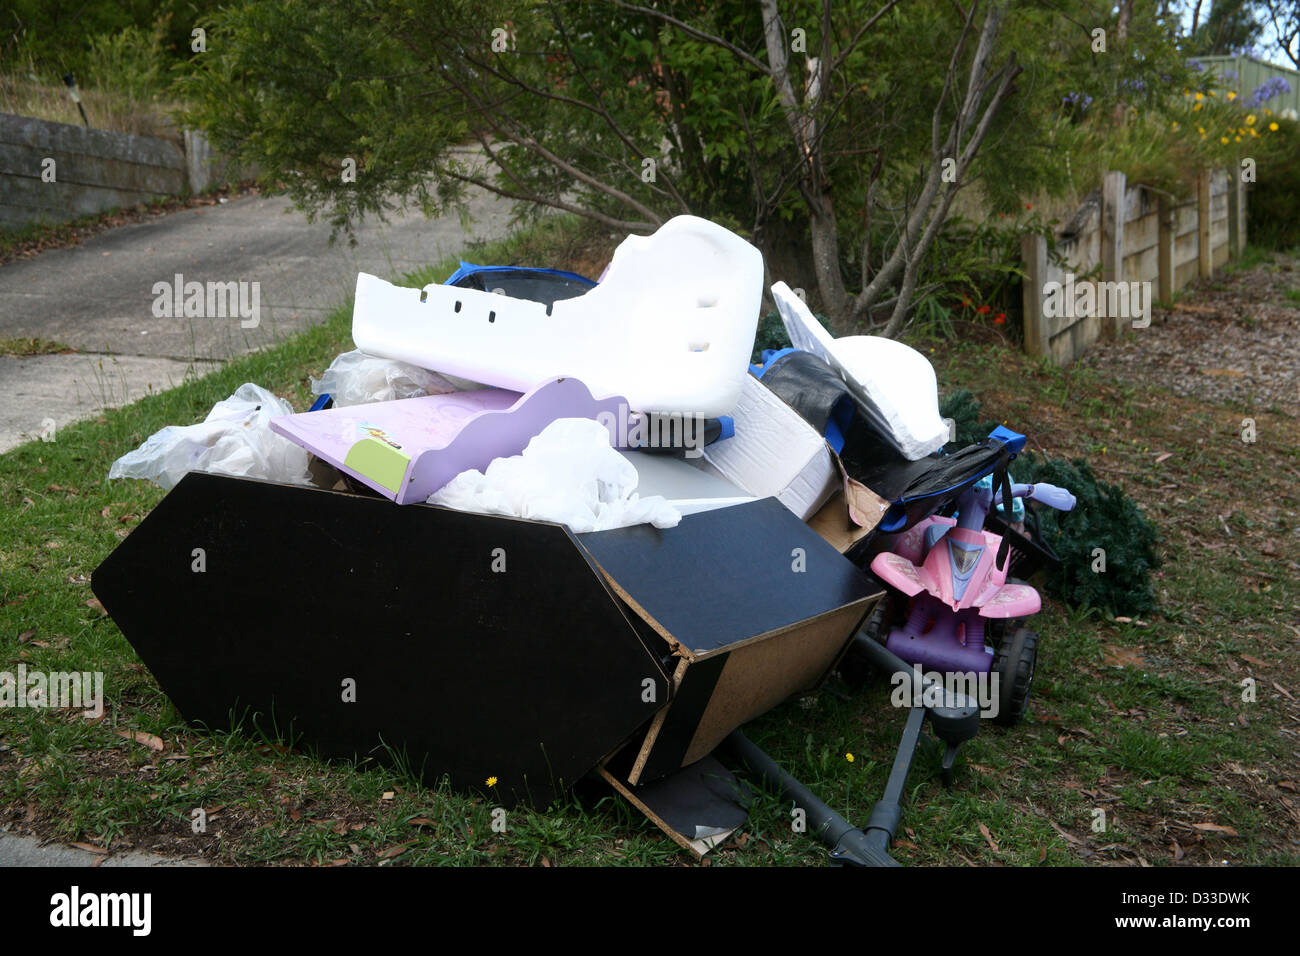 Household rubbish thrown out for council recycling - Stock Image